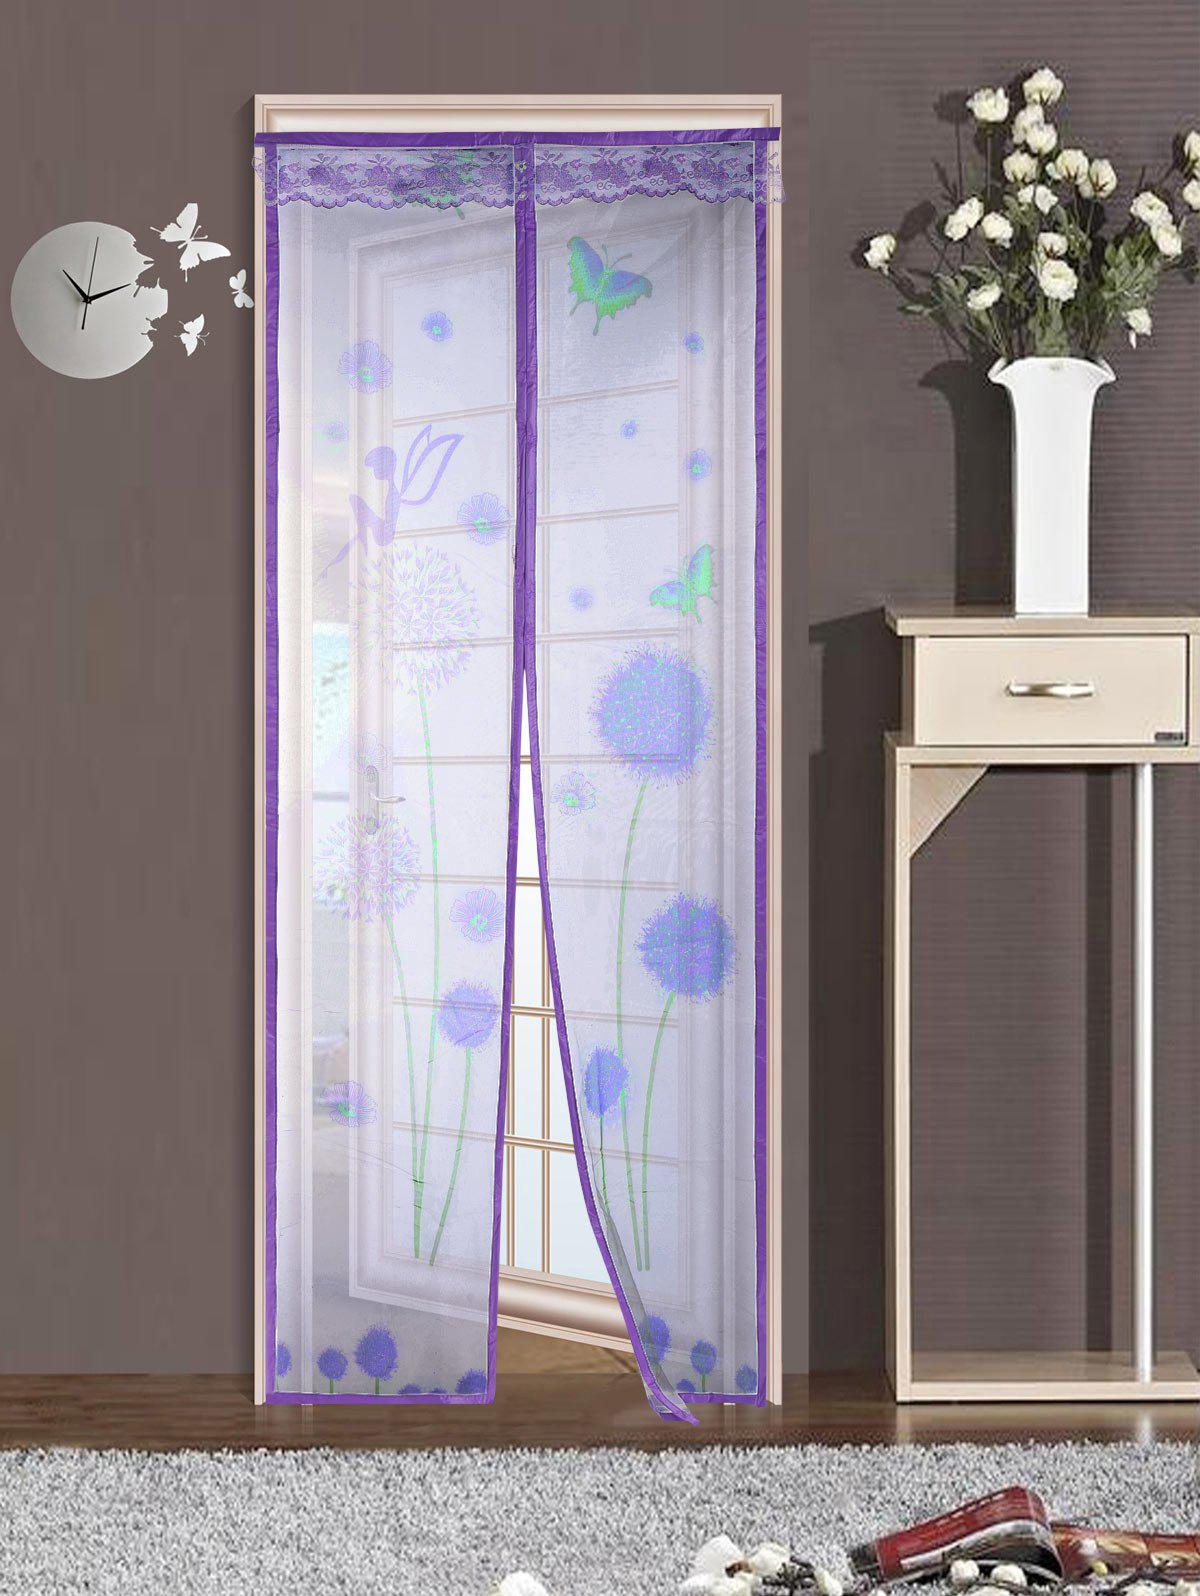 Dandelion Door Screen Insect Stopping Net Magnetic Curtain - PURPLE 100*210CM